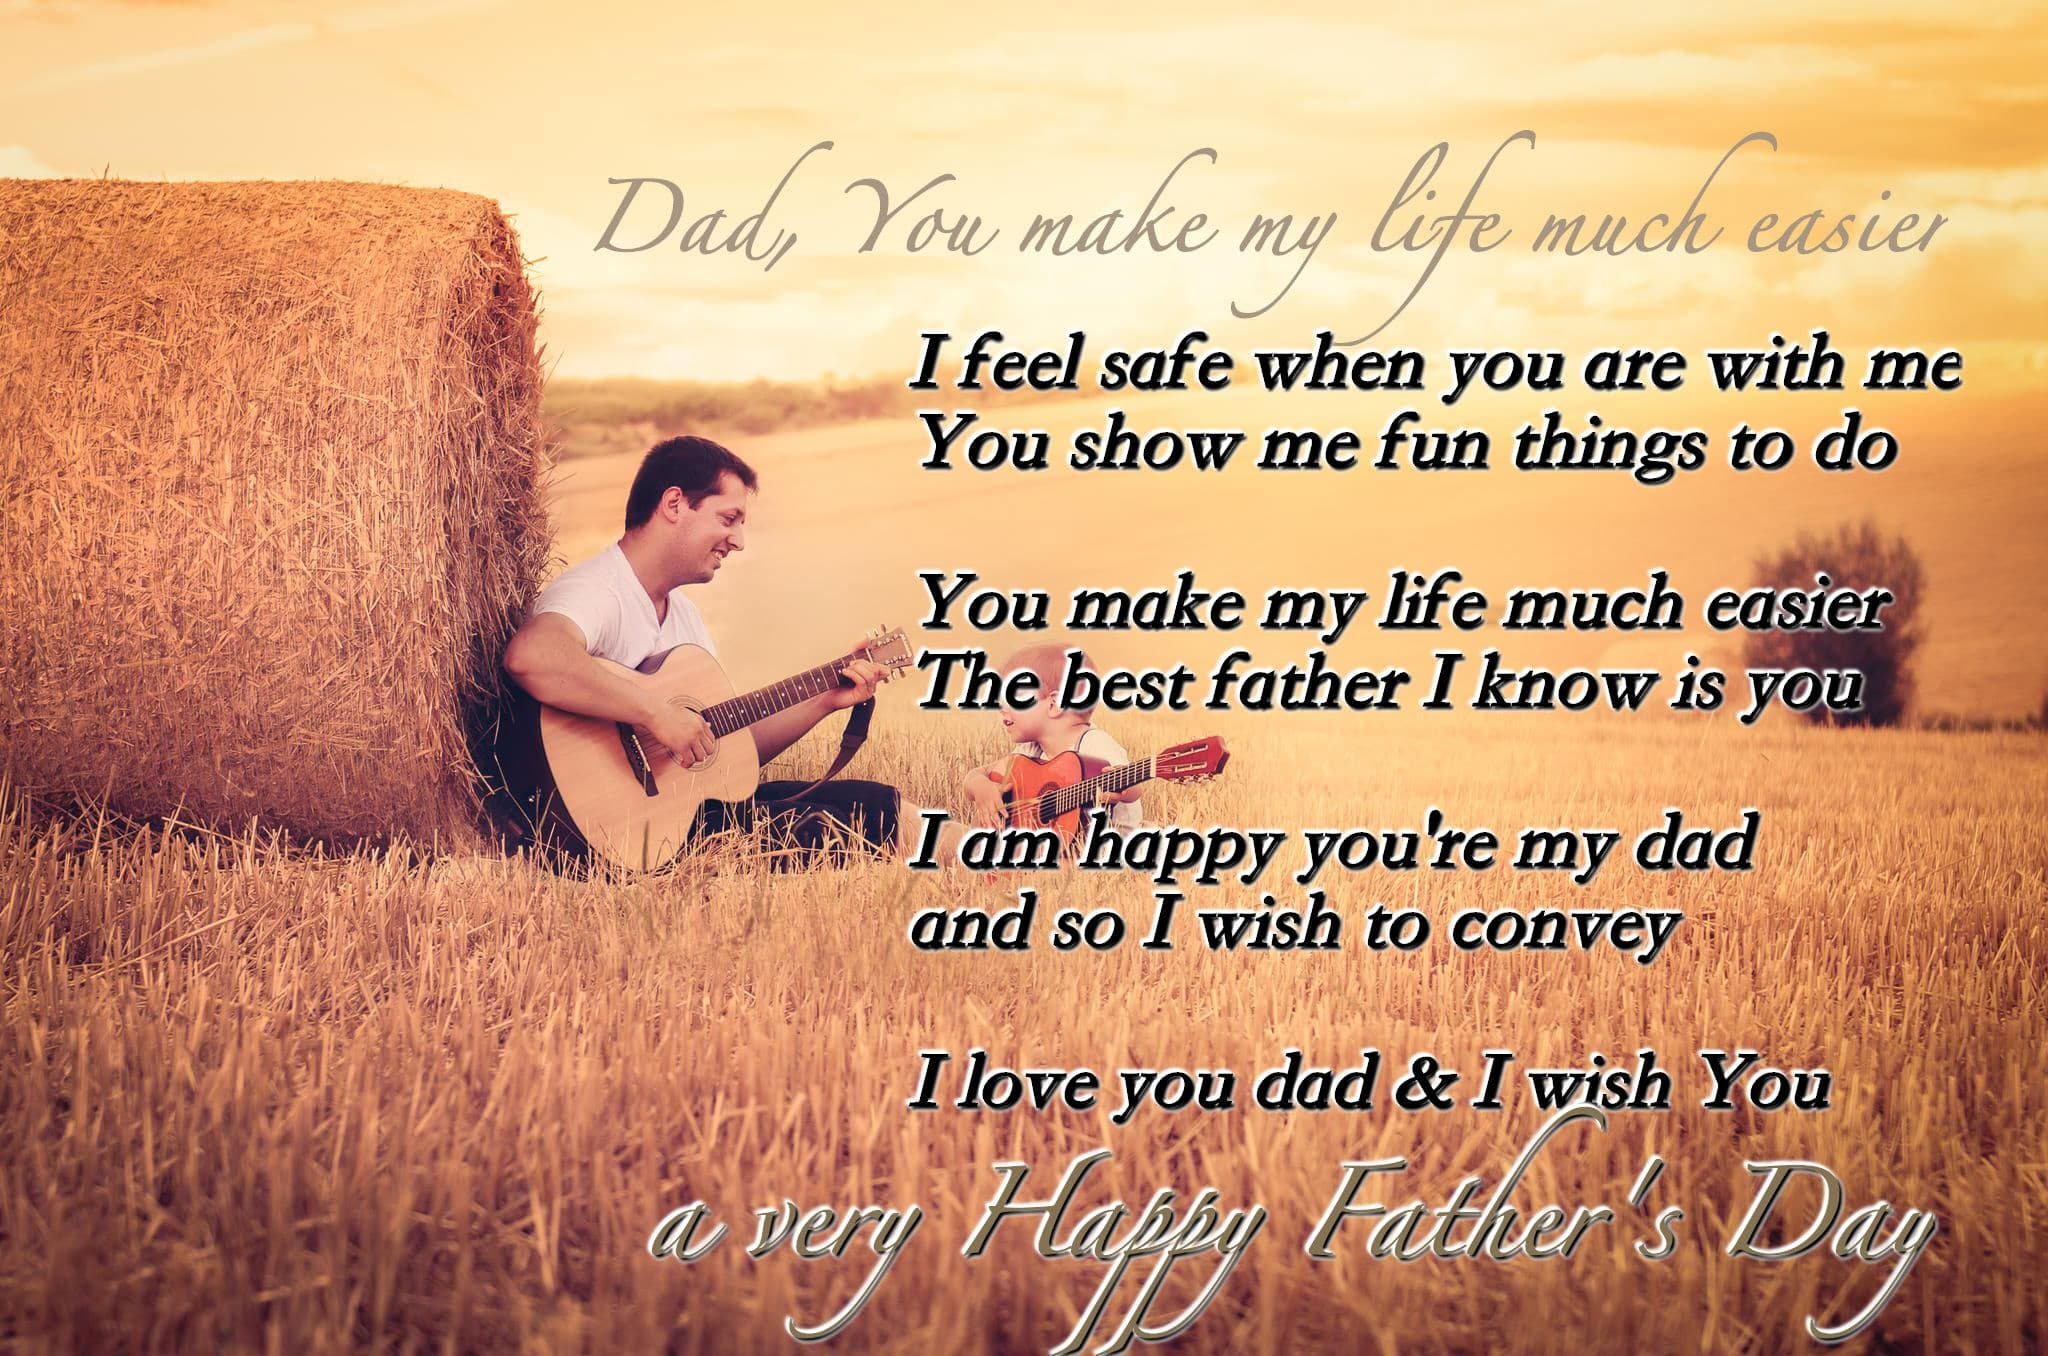 Fathers Day Images From Daughter